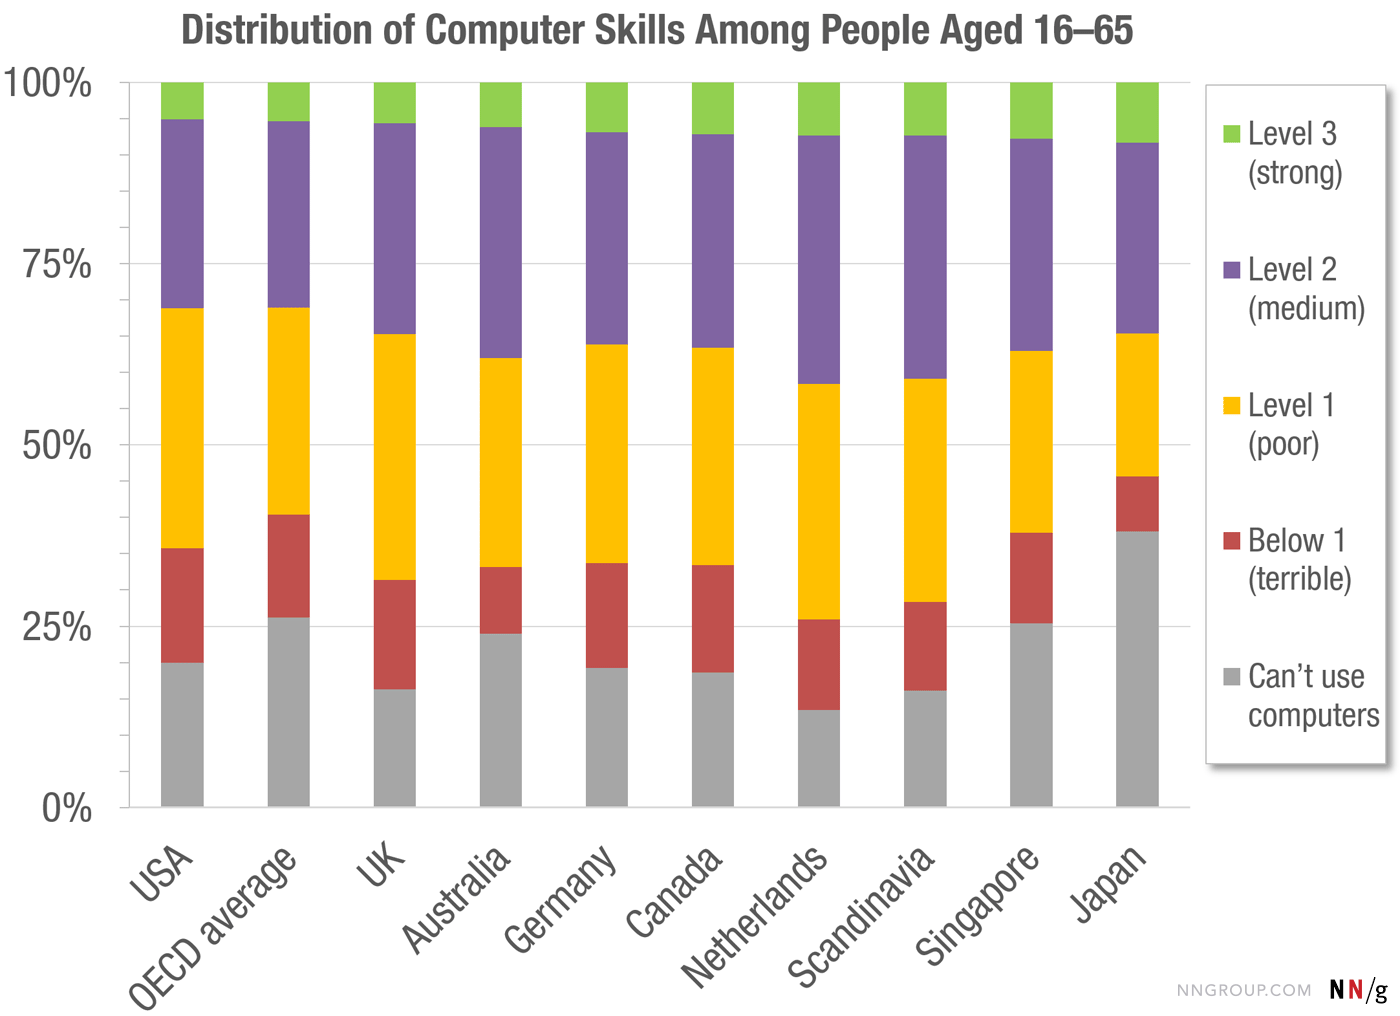 Data from the OECD study of technical skills show the distribution among skill levels across countries as well as the average for all OECD countries.